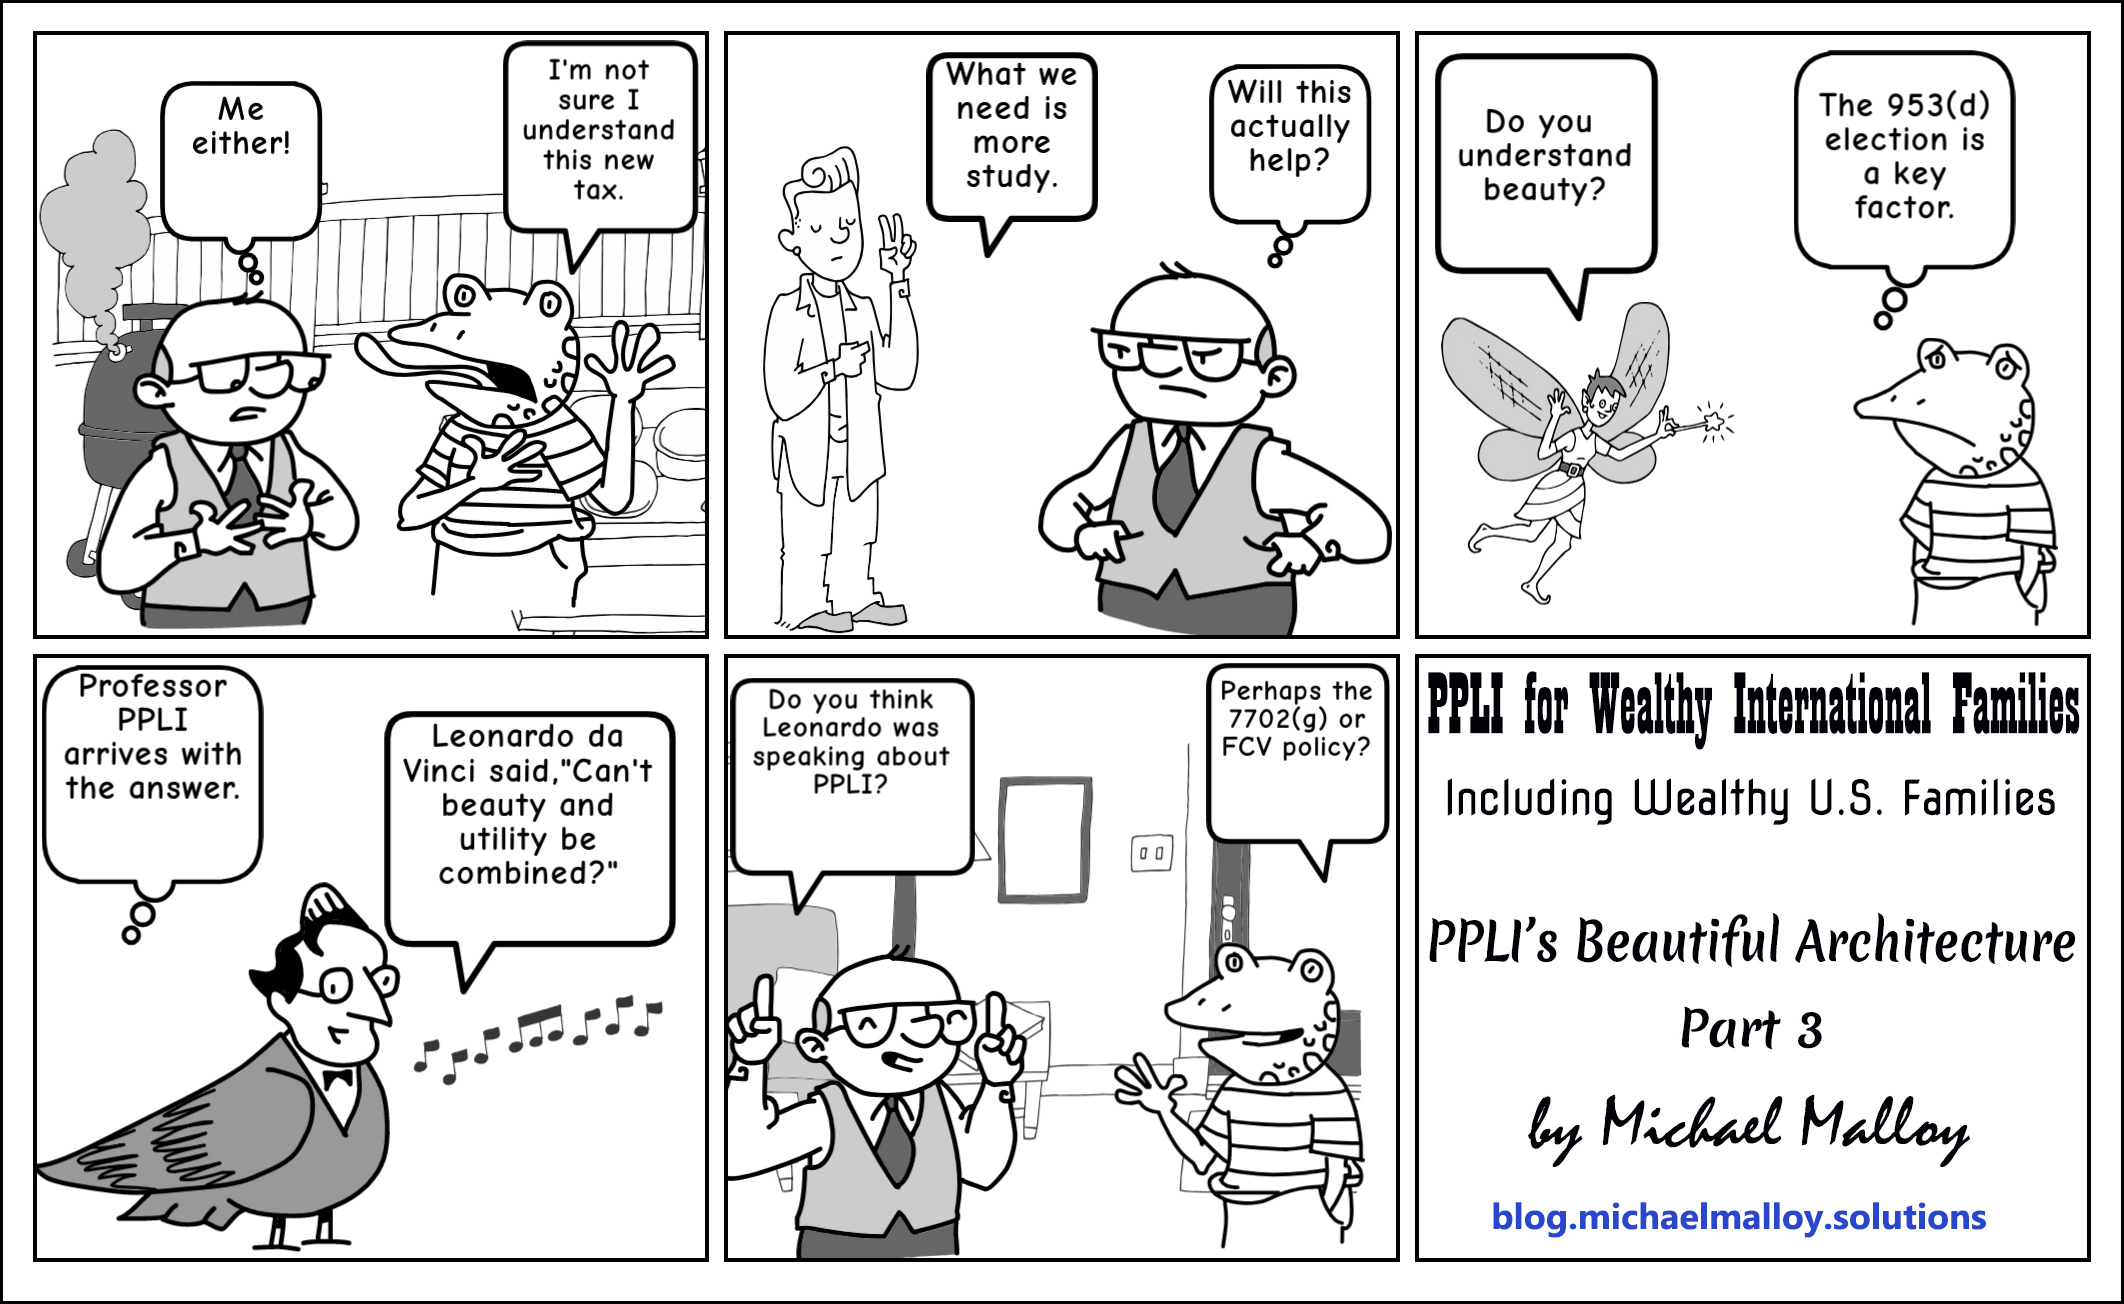 PPLI for Wealthy International Families